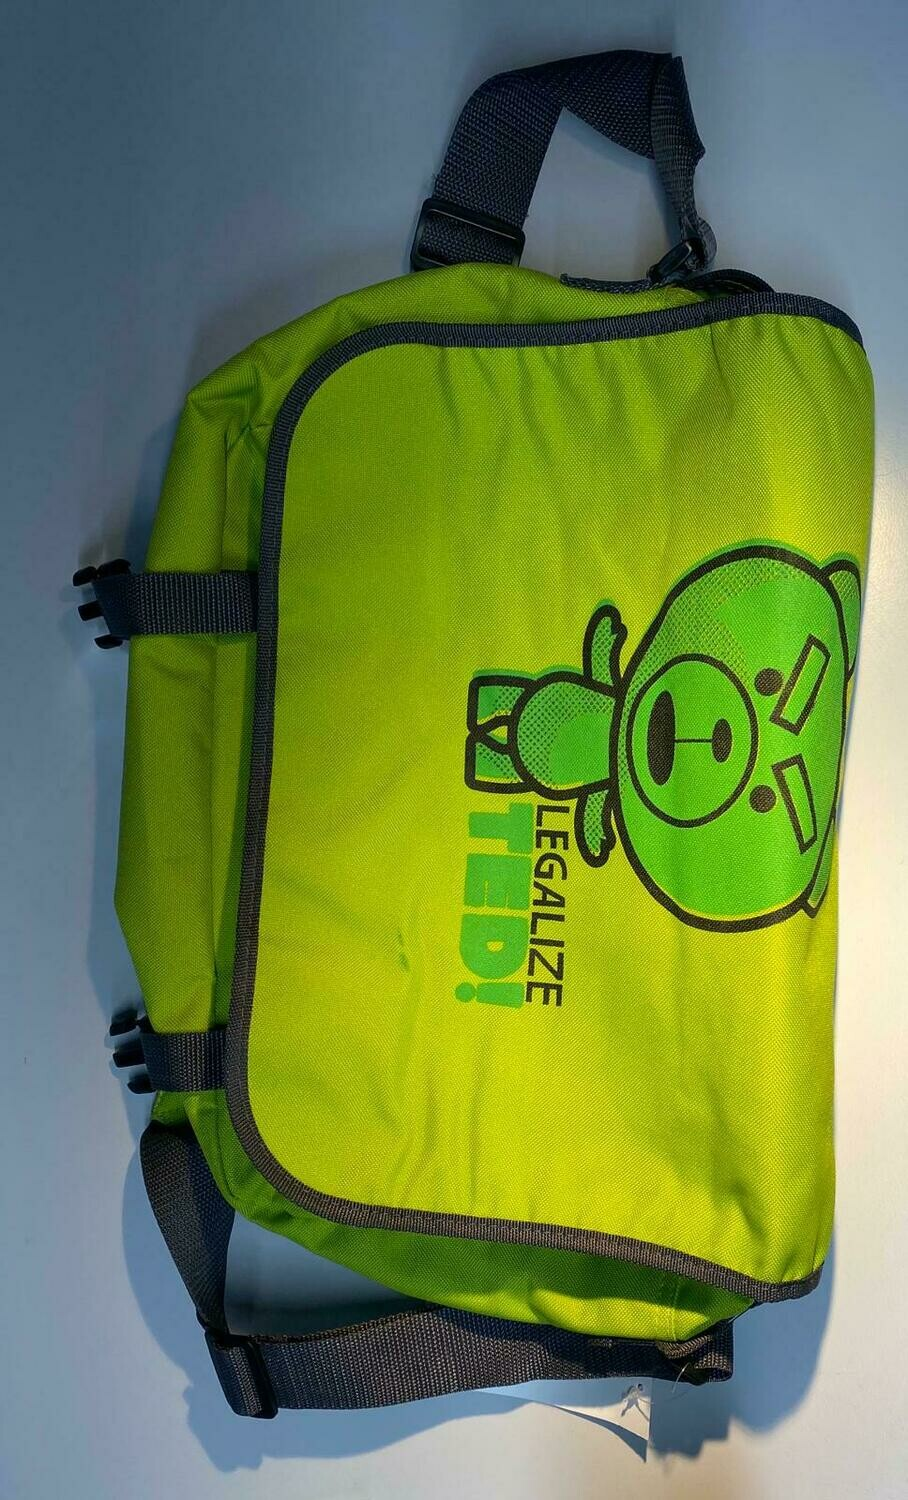 Ted 2 High Quality Courier Bag